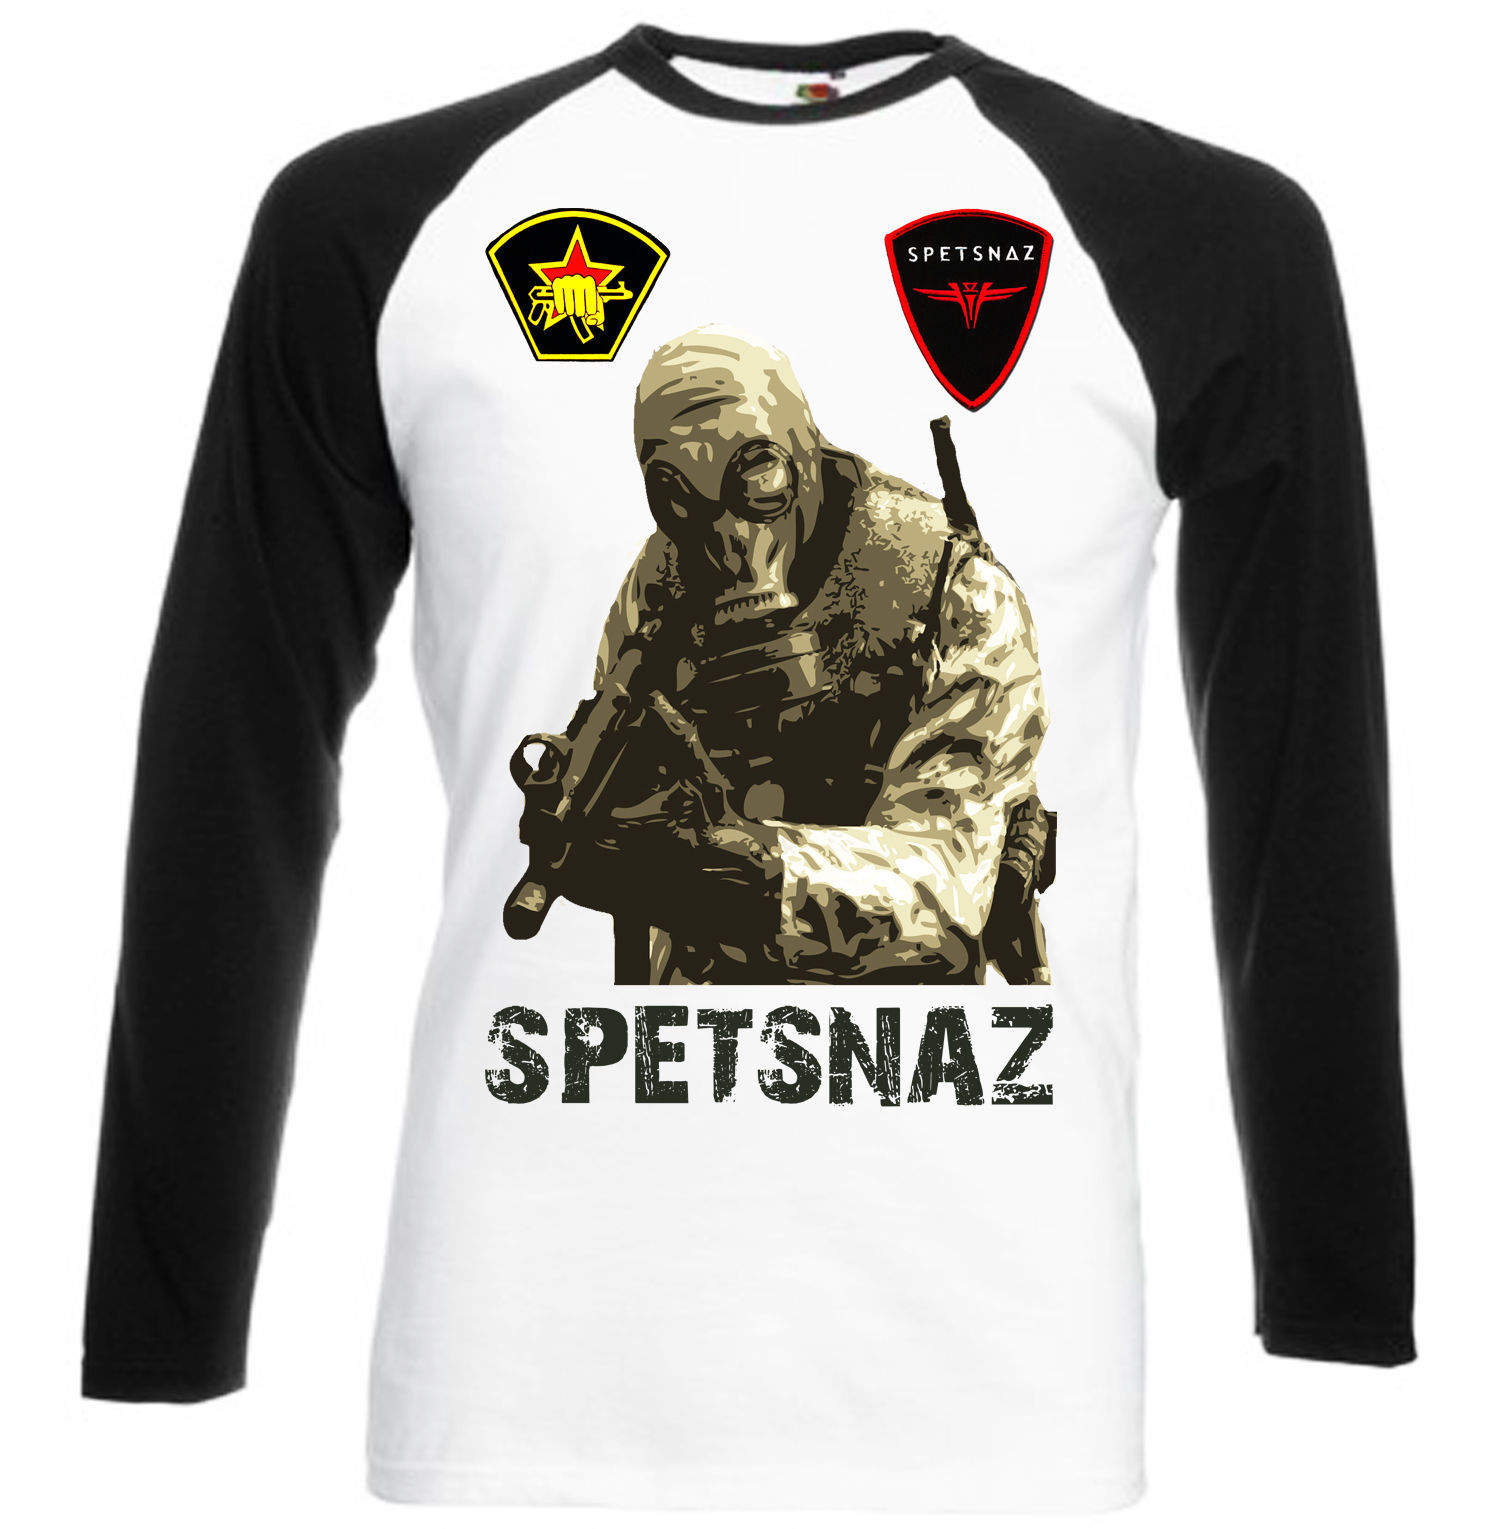 Primary image for SPETSNAZ   NEW  BLACK SLEEVED BASEBALL  T-SHIRT- S-M-L-XL-XXL